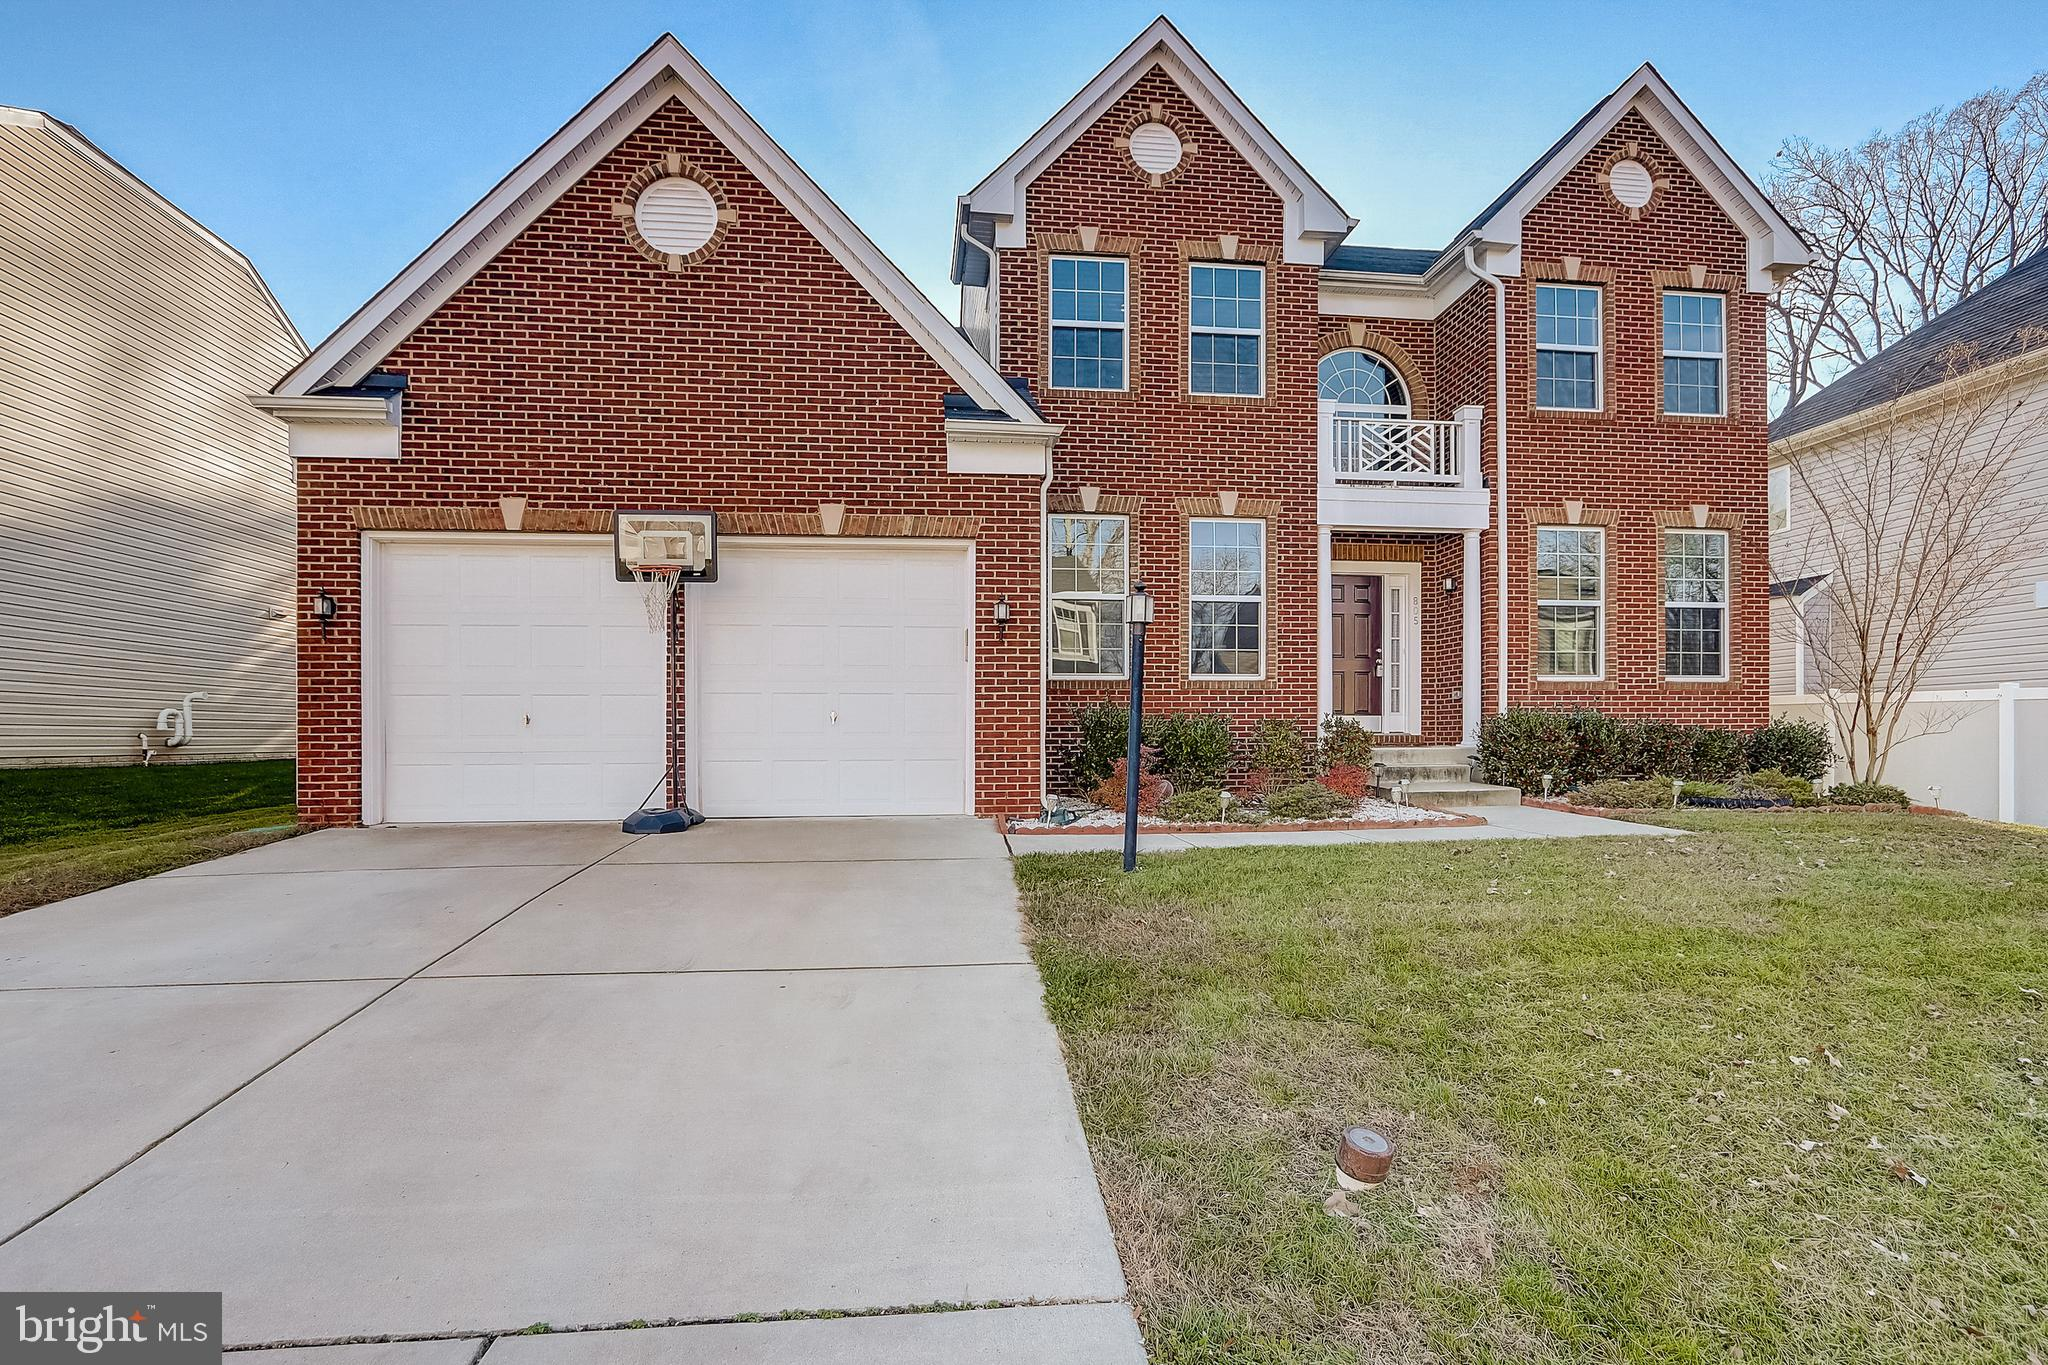 The house that you have been waiting for ! Easily one of the biggest house in the neighborhood with